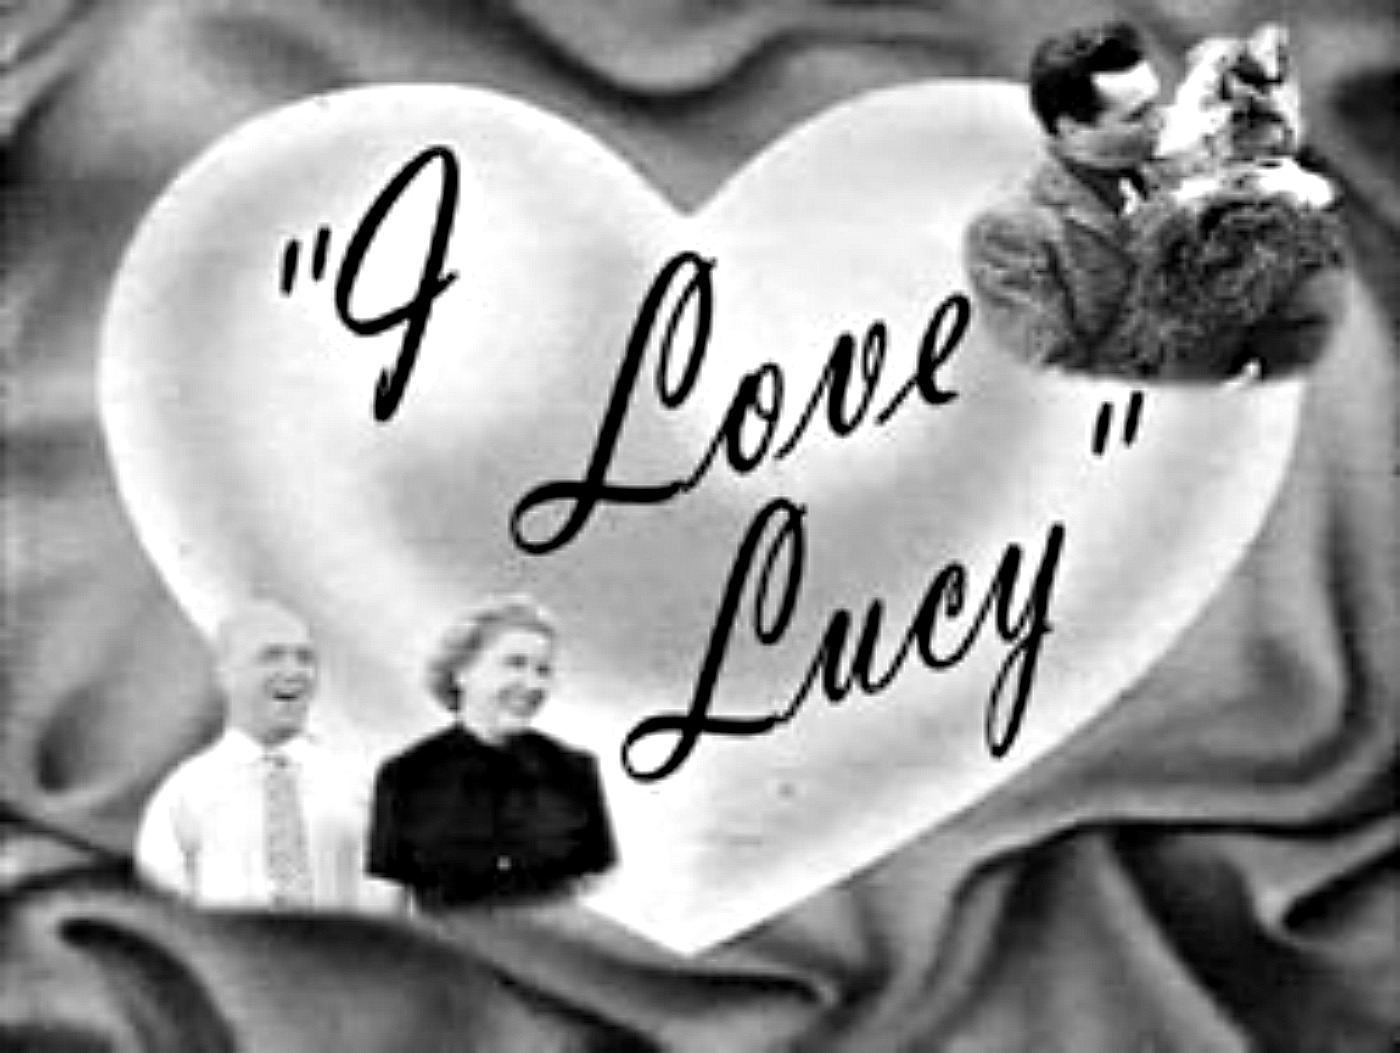 I Liebe Lucy